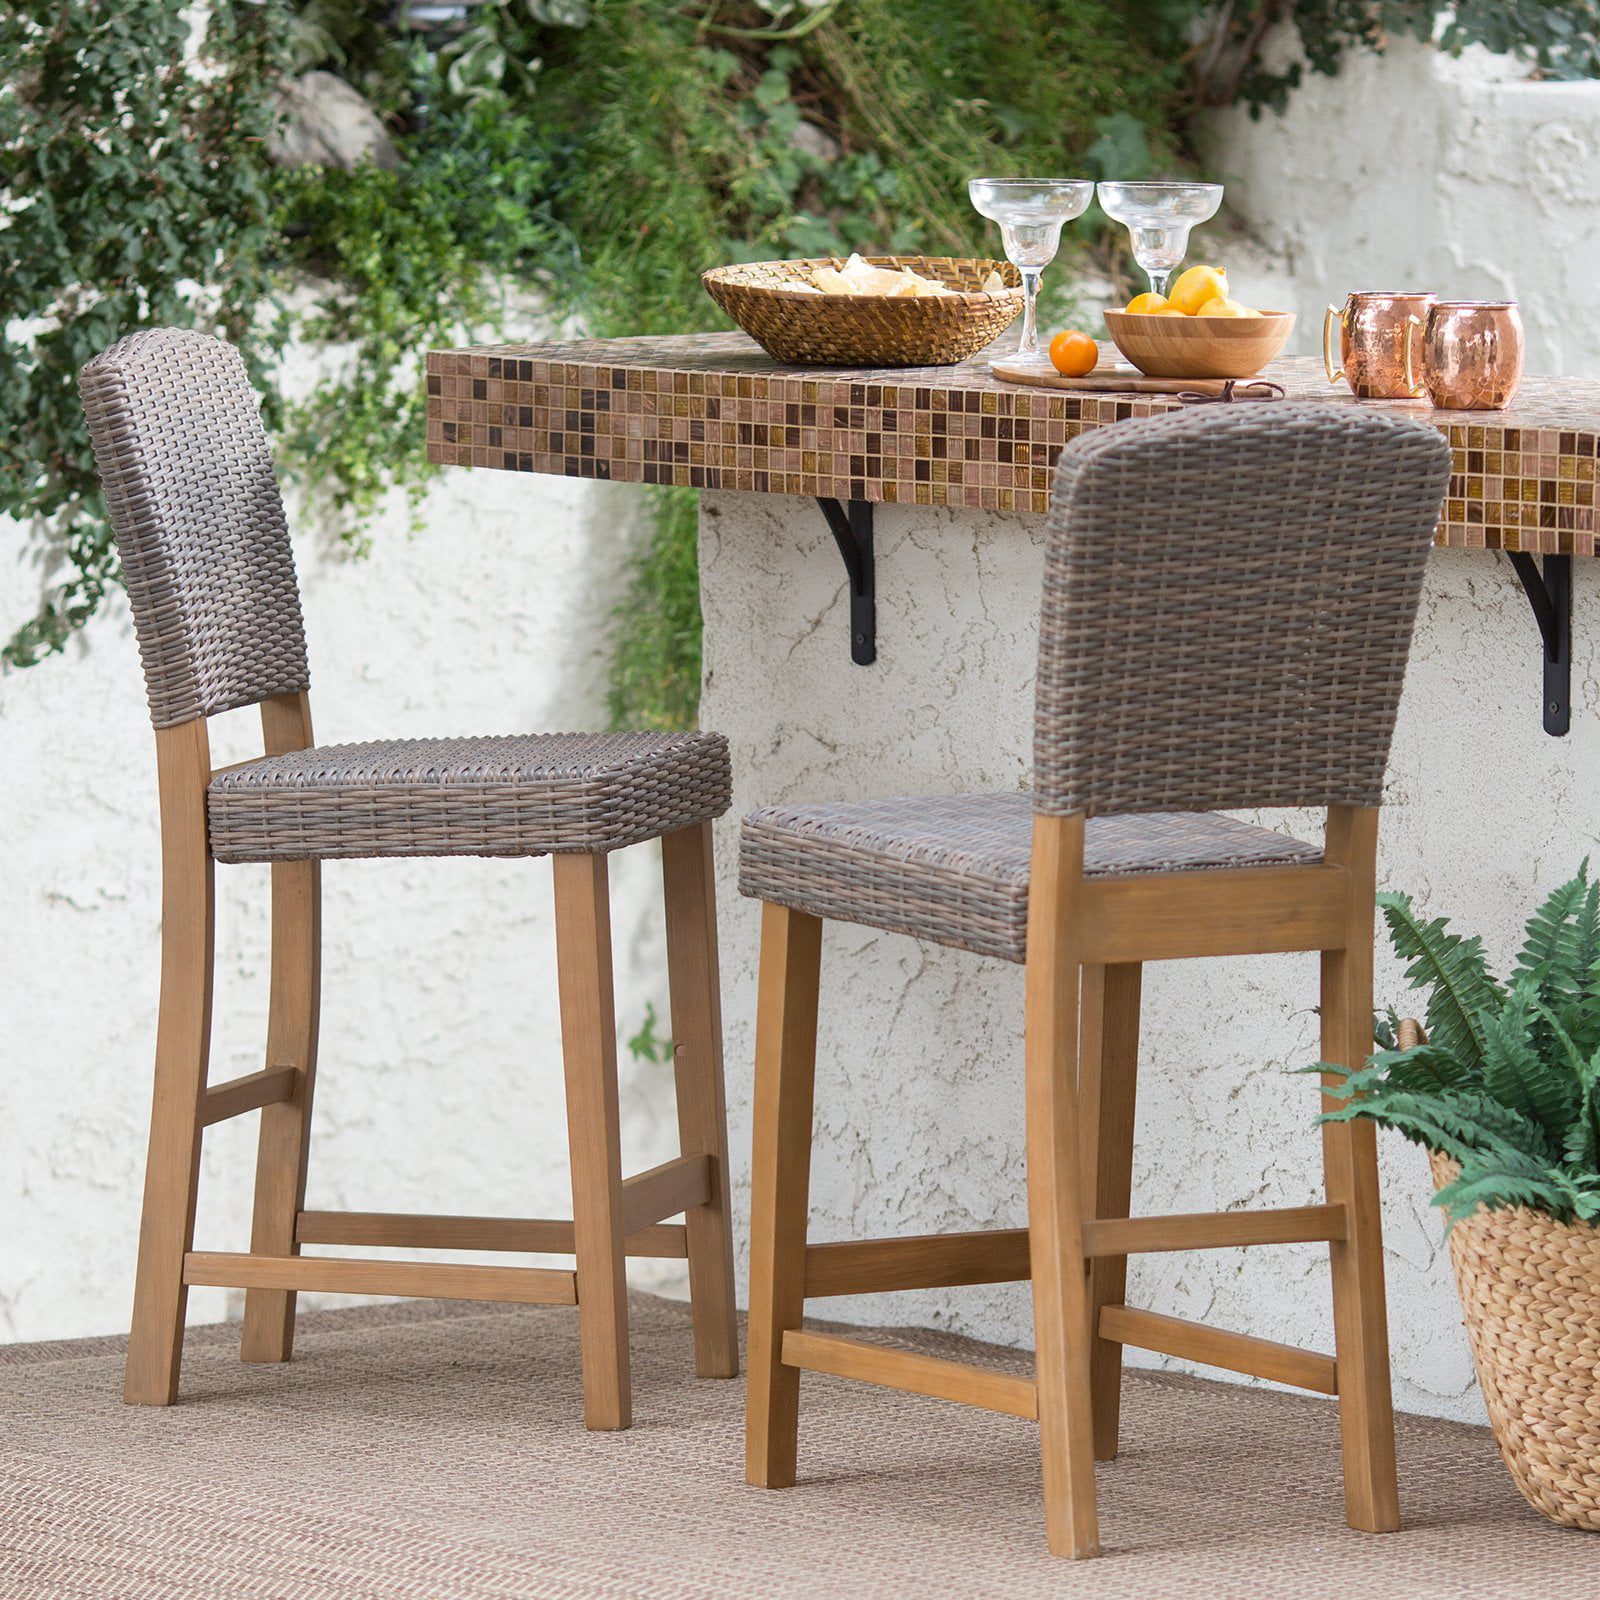 Outstanding Coral Coast Avalonia All Weather Wicker Counter Height Patio Bar Stool Set Of 2 Spiritservingveterans Wood Chair Design Ideas Spiritservingveteransorg